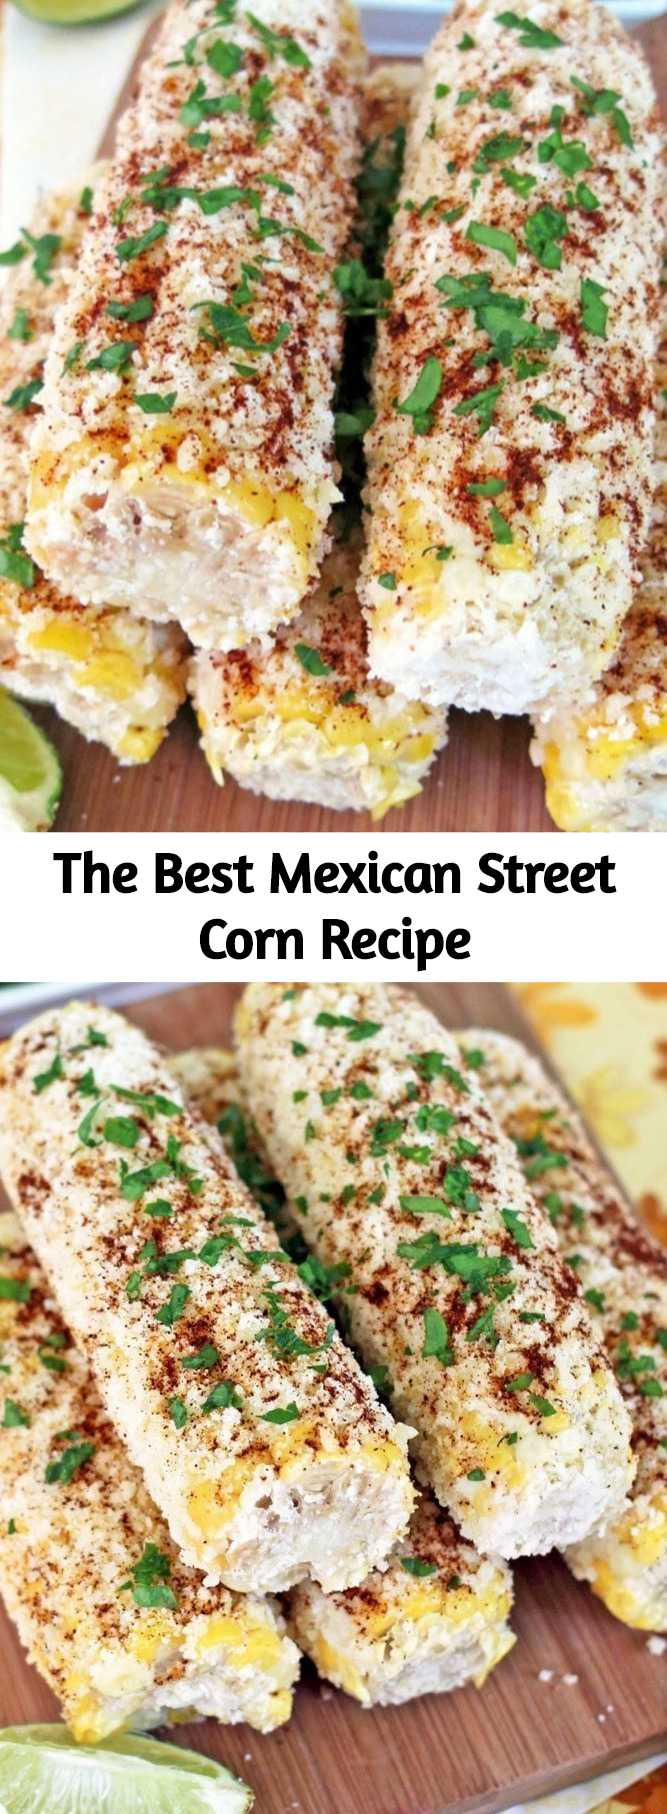 The best Mexican Street Corn is made my smearing piping hot corn on the cob with mayonnaise and dredging it with Queso or Cotija cheese, fresh cilantro, chili powder, lime and plenty of salt and pepper. #mexicanstreetcorn